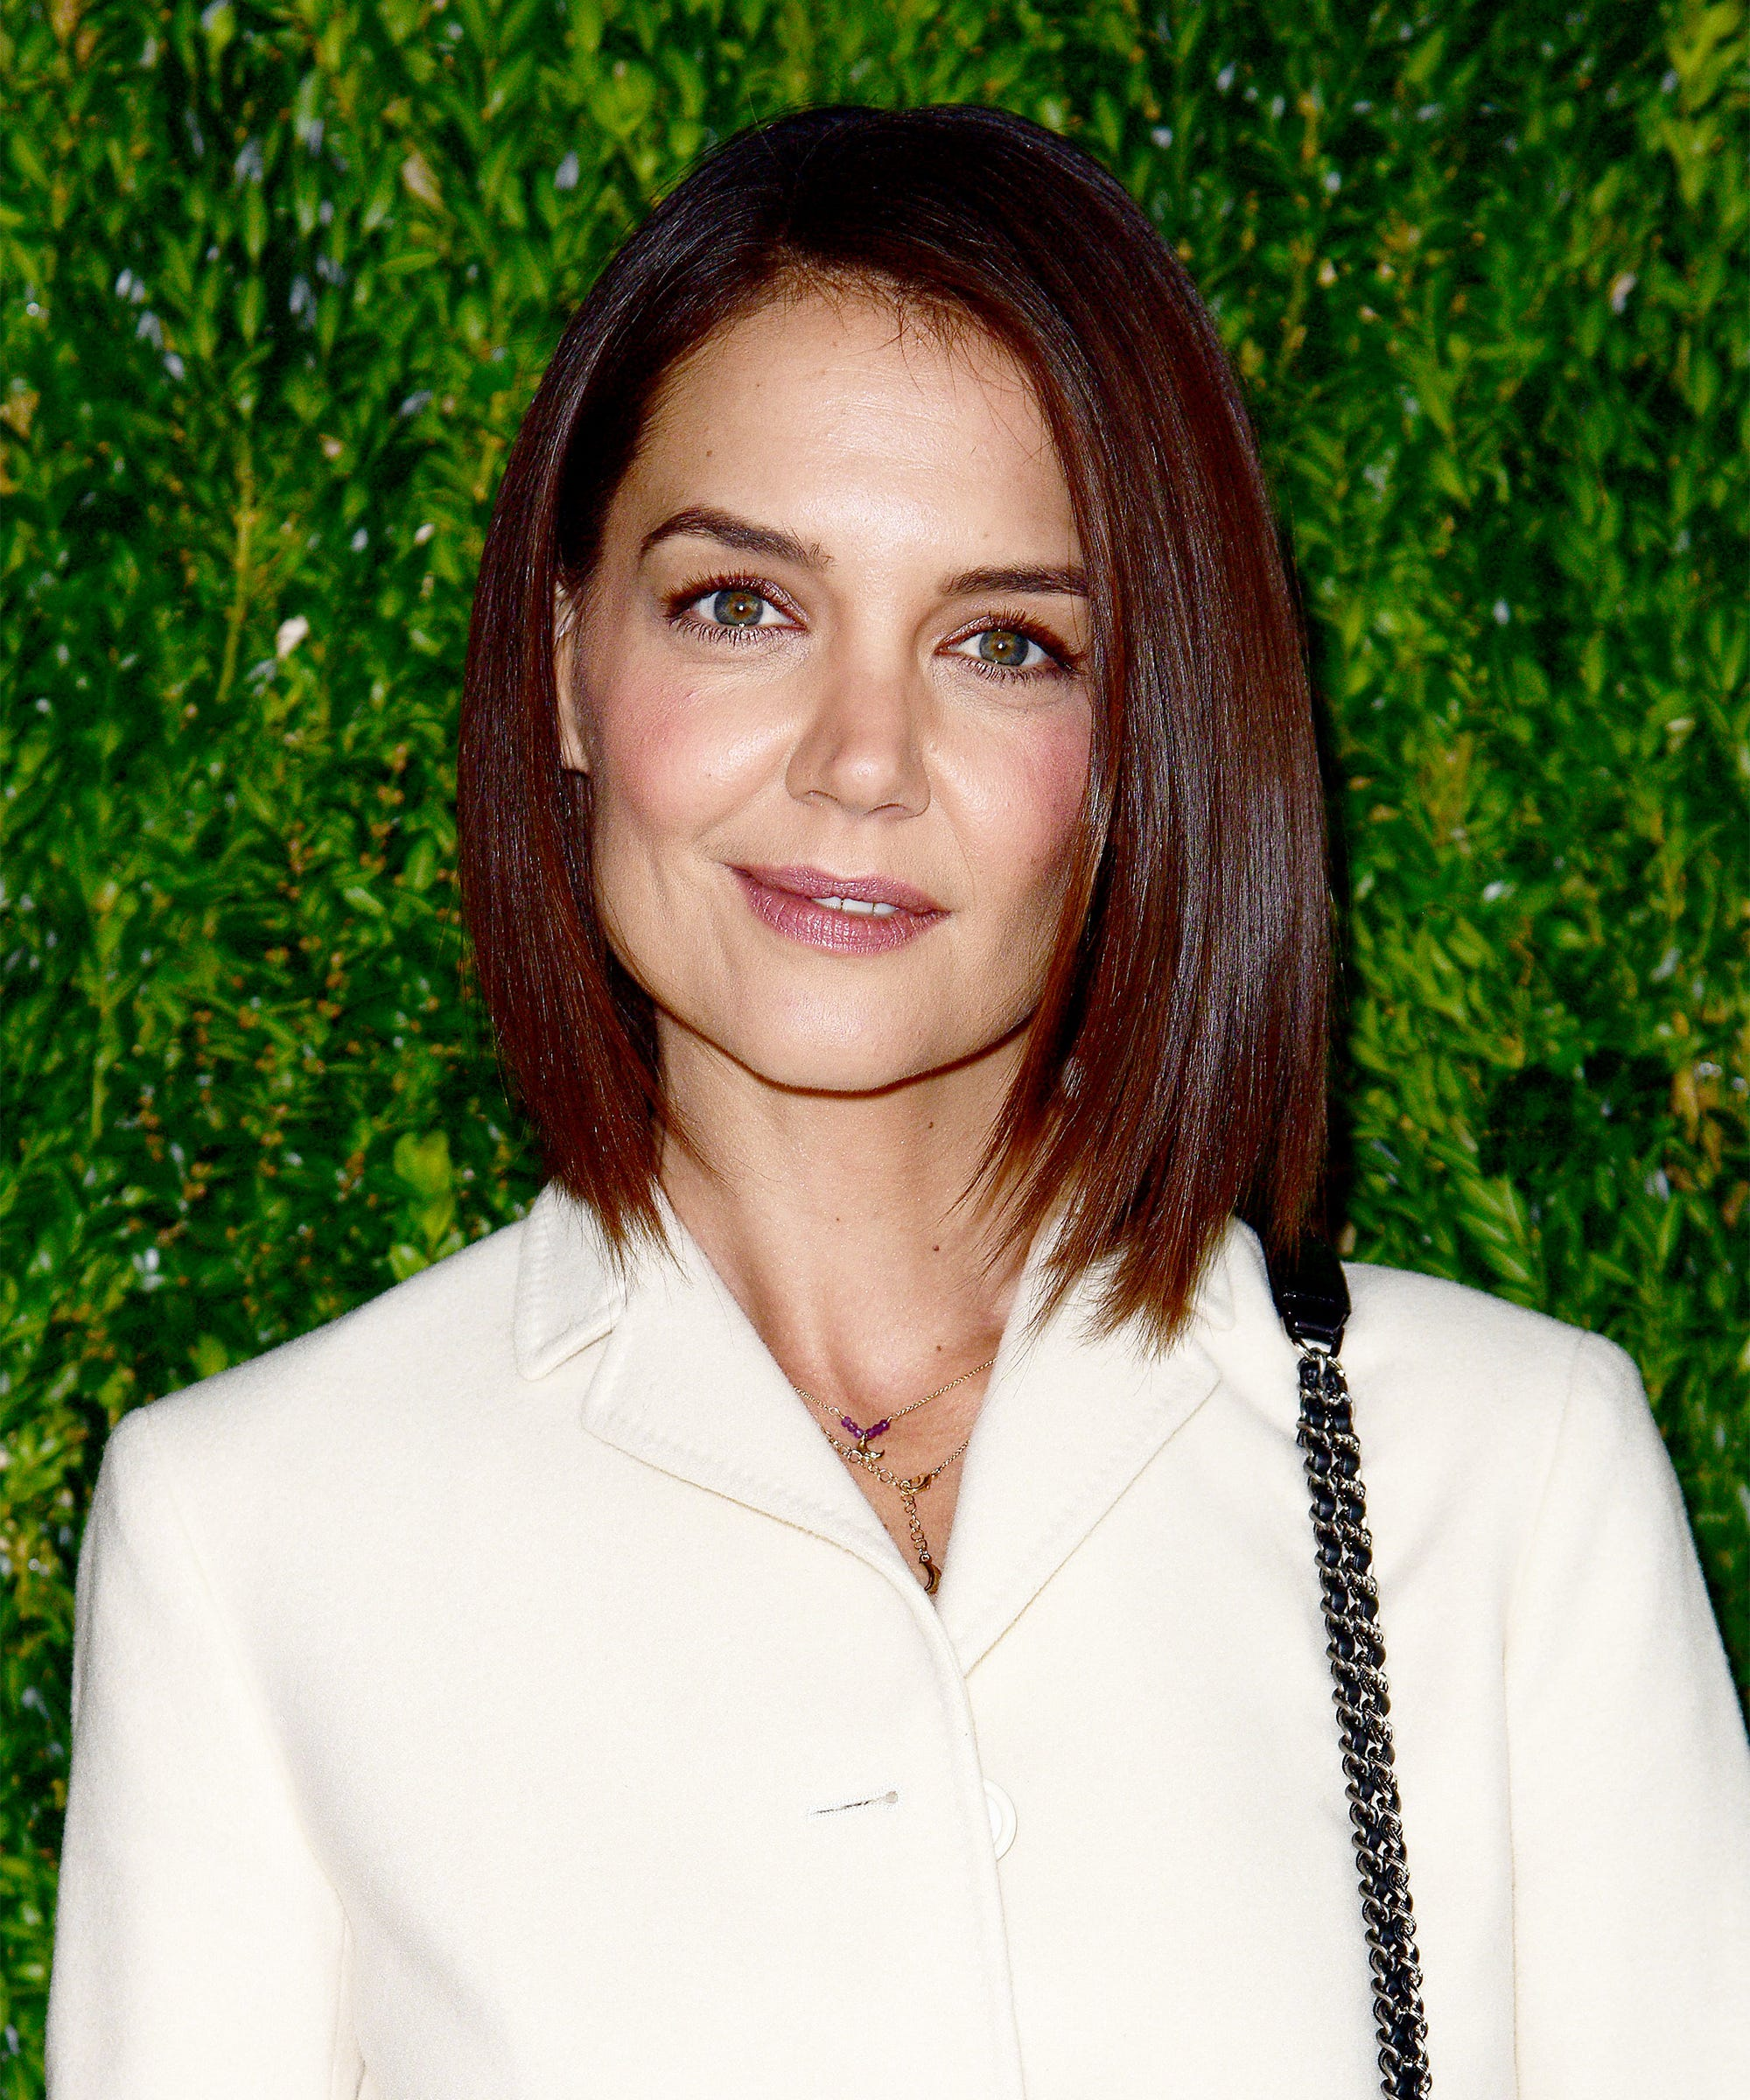 Katie Holmes Hairstylist Breaks Down Her Relaxed Bob